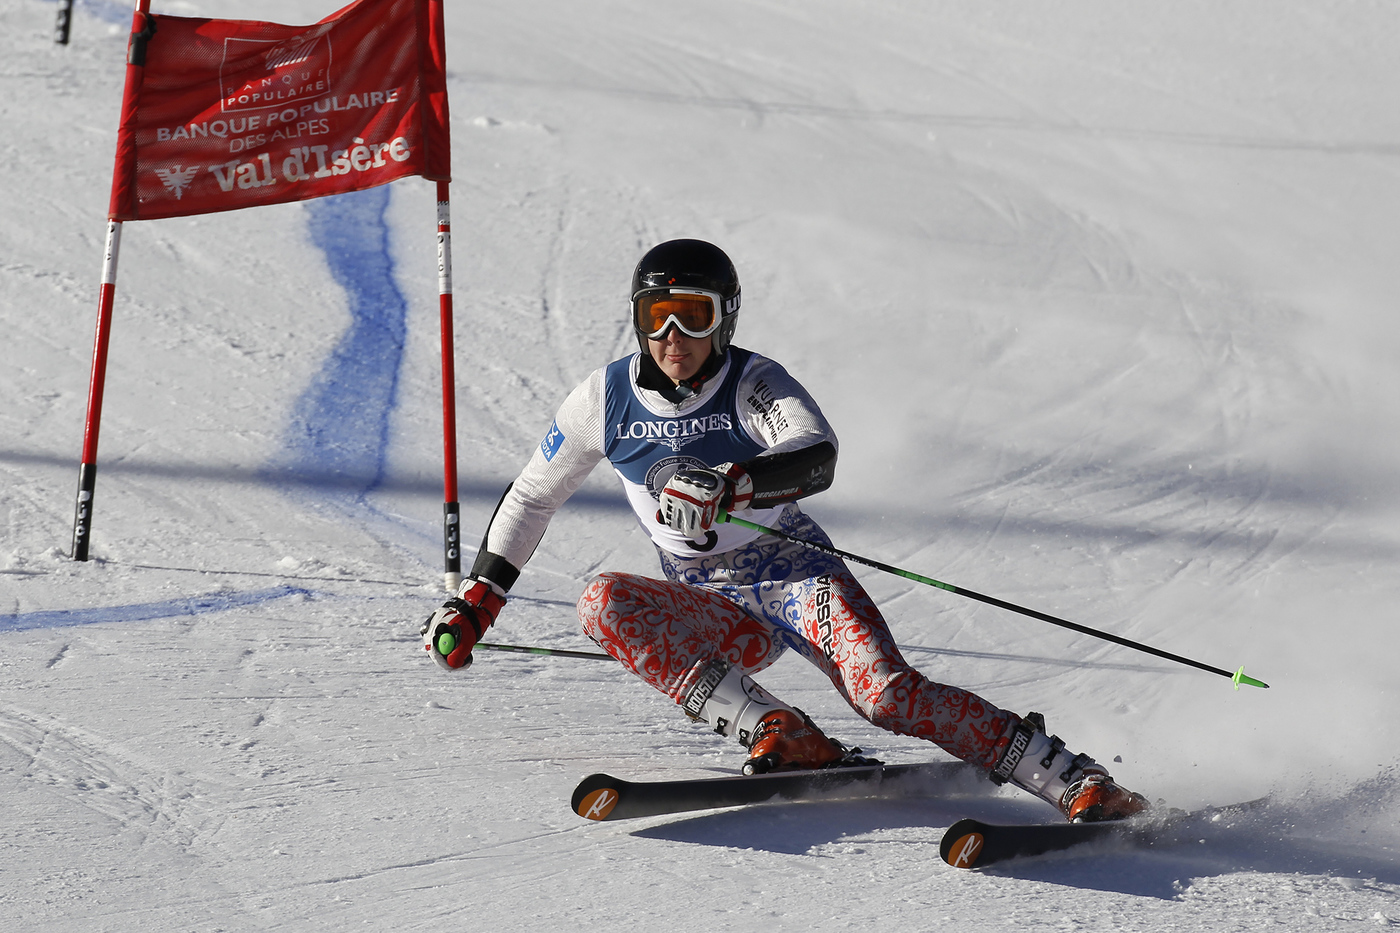 Longines Alpine Skiing Event: The Longines Future Ski Champion 2013 19